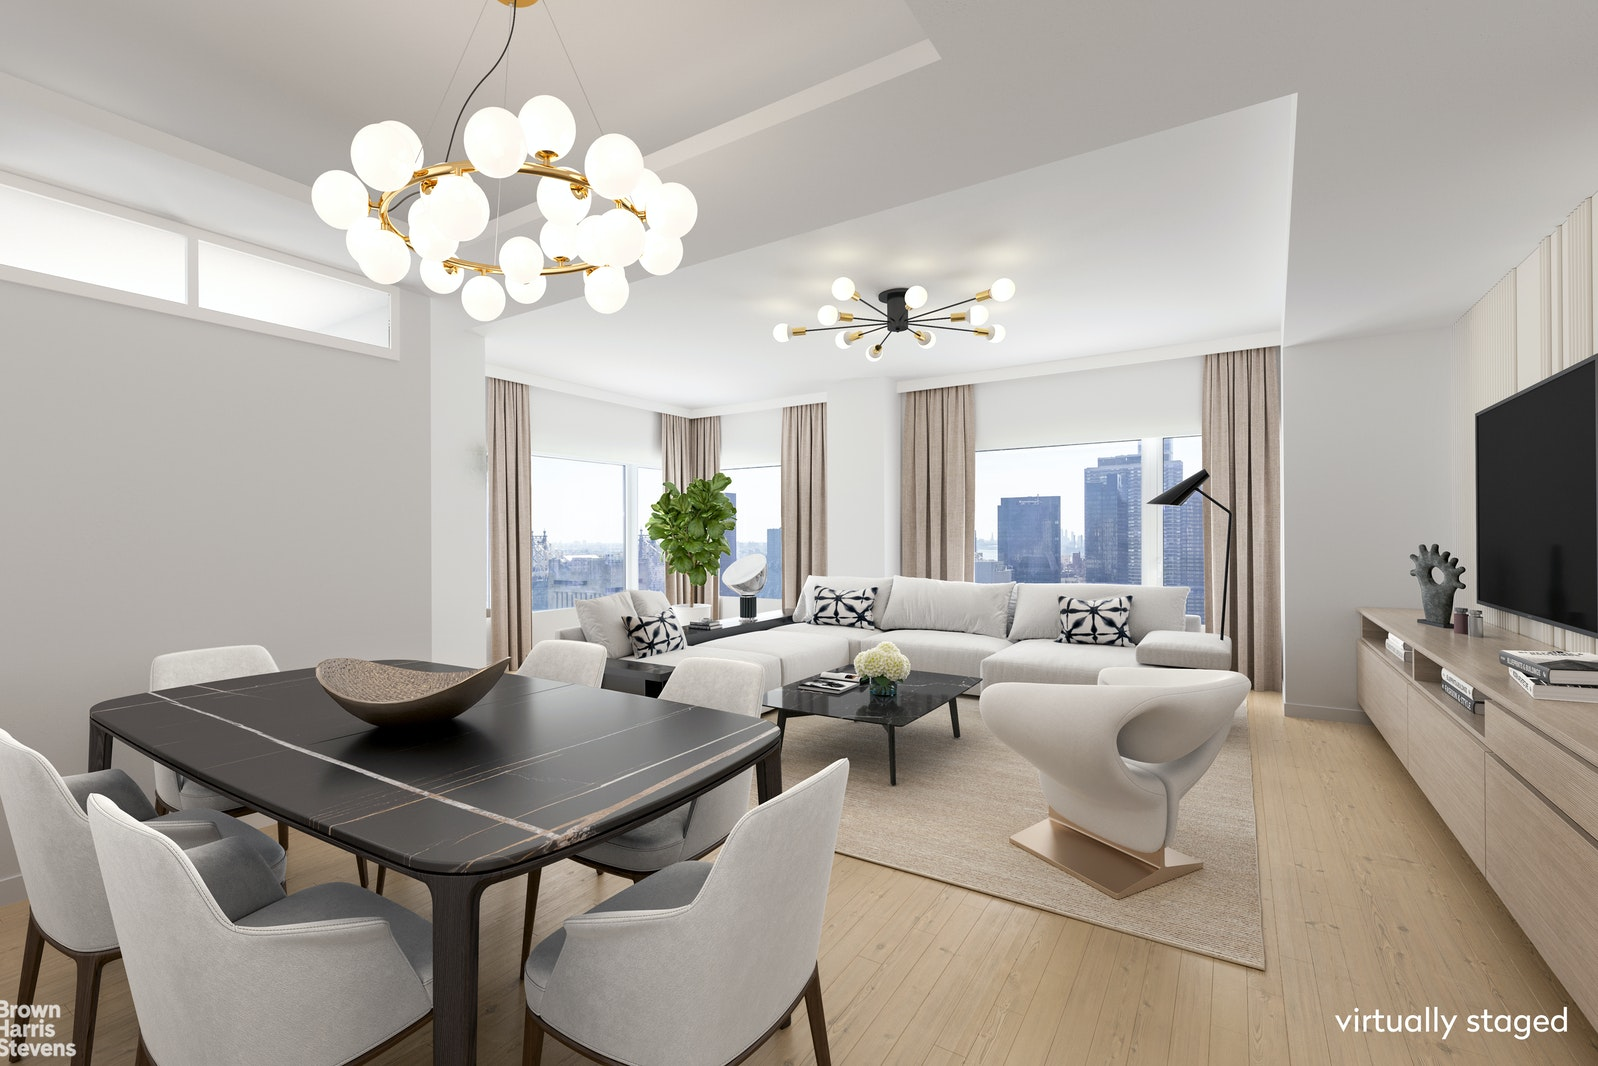 Apartment for sale at 400 East 67th Street, Apt 27C